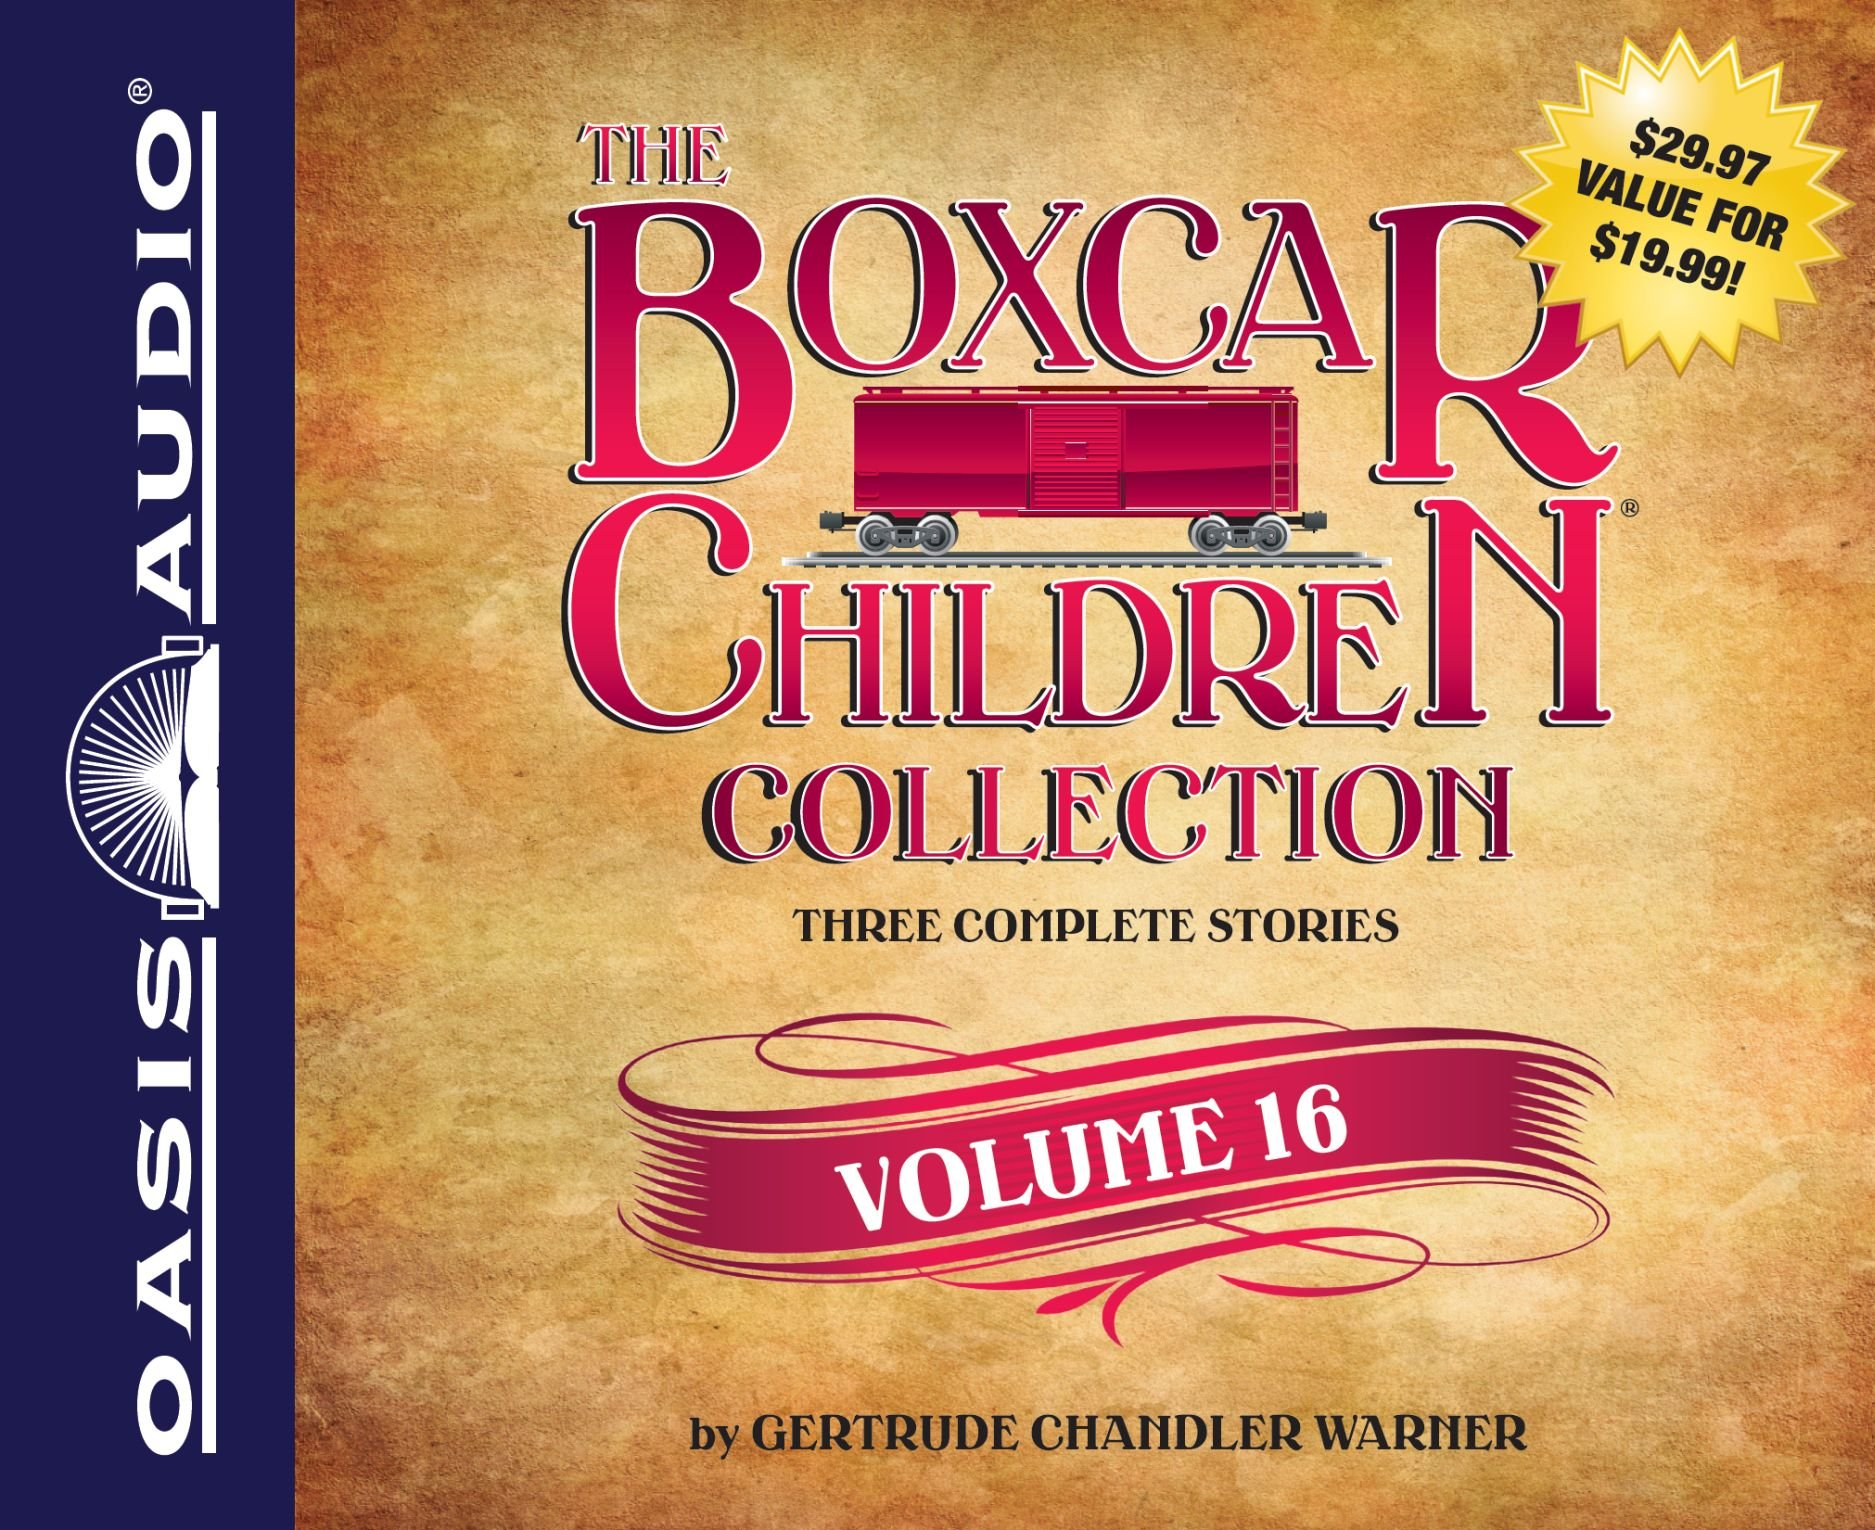 The Boxcar Children Collection Volume 16: The Chocolate Sundae Mystery, The Mystery of the Hot Air Balloon, The Mystery Bookstore